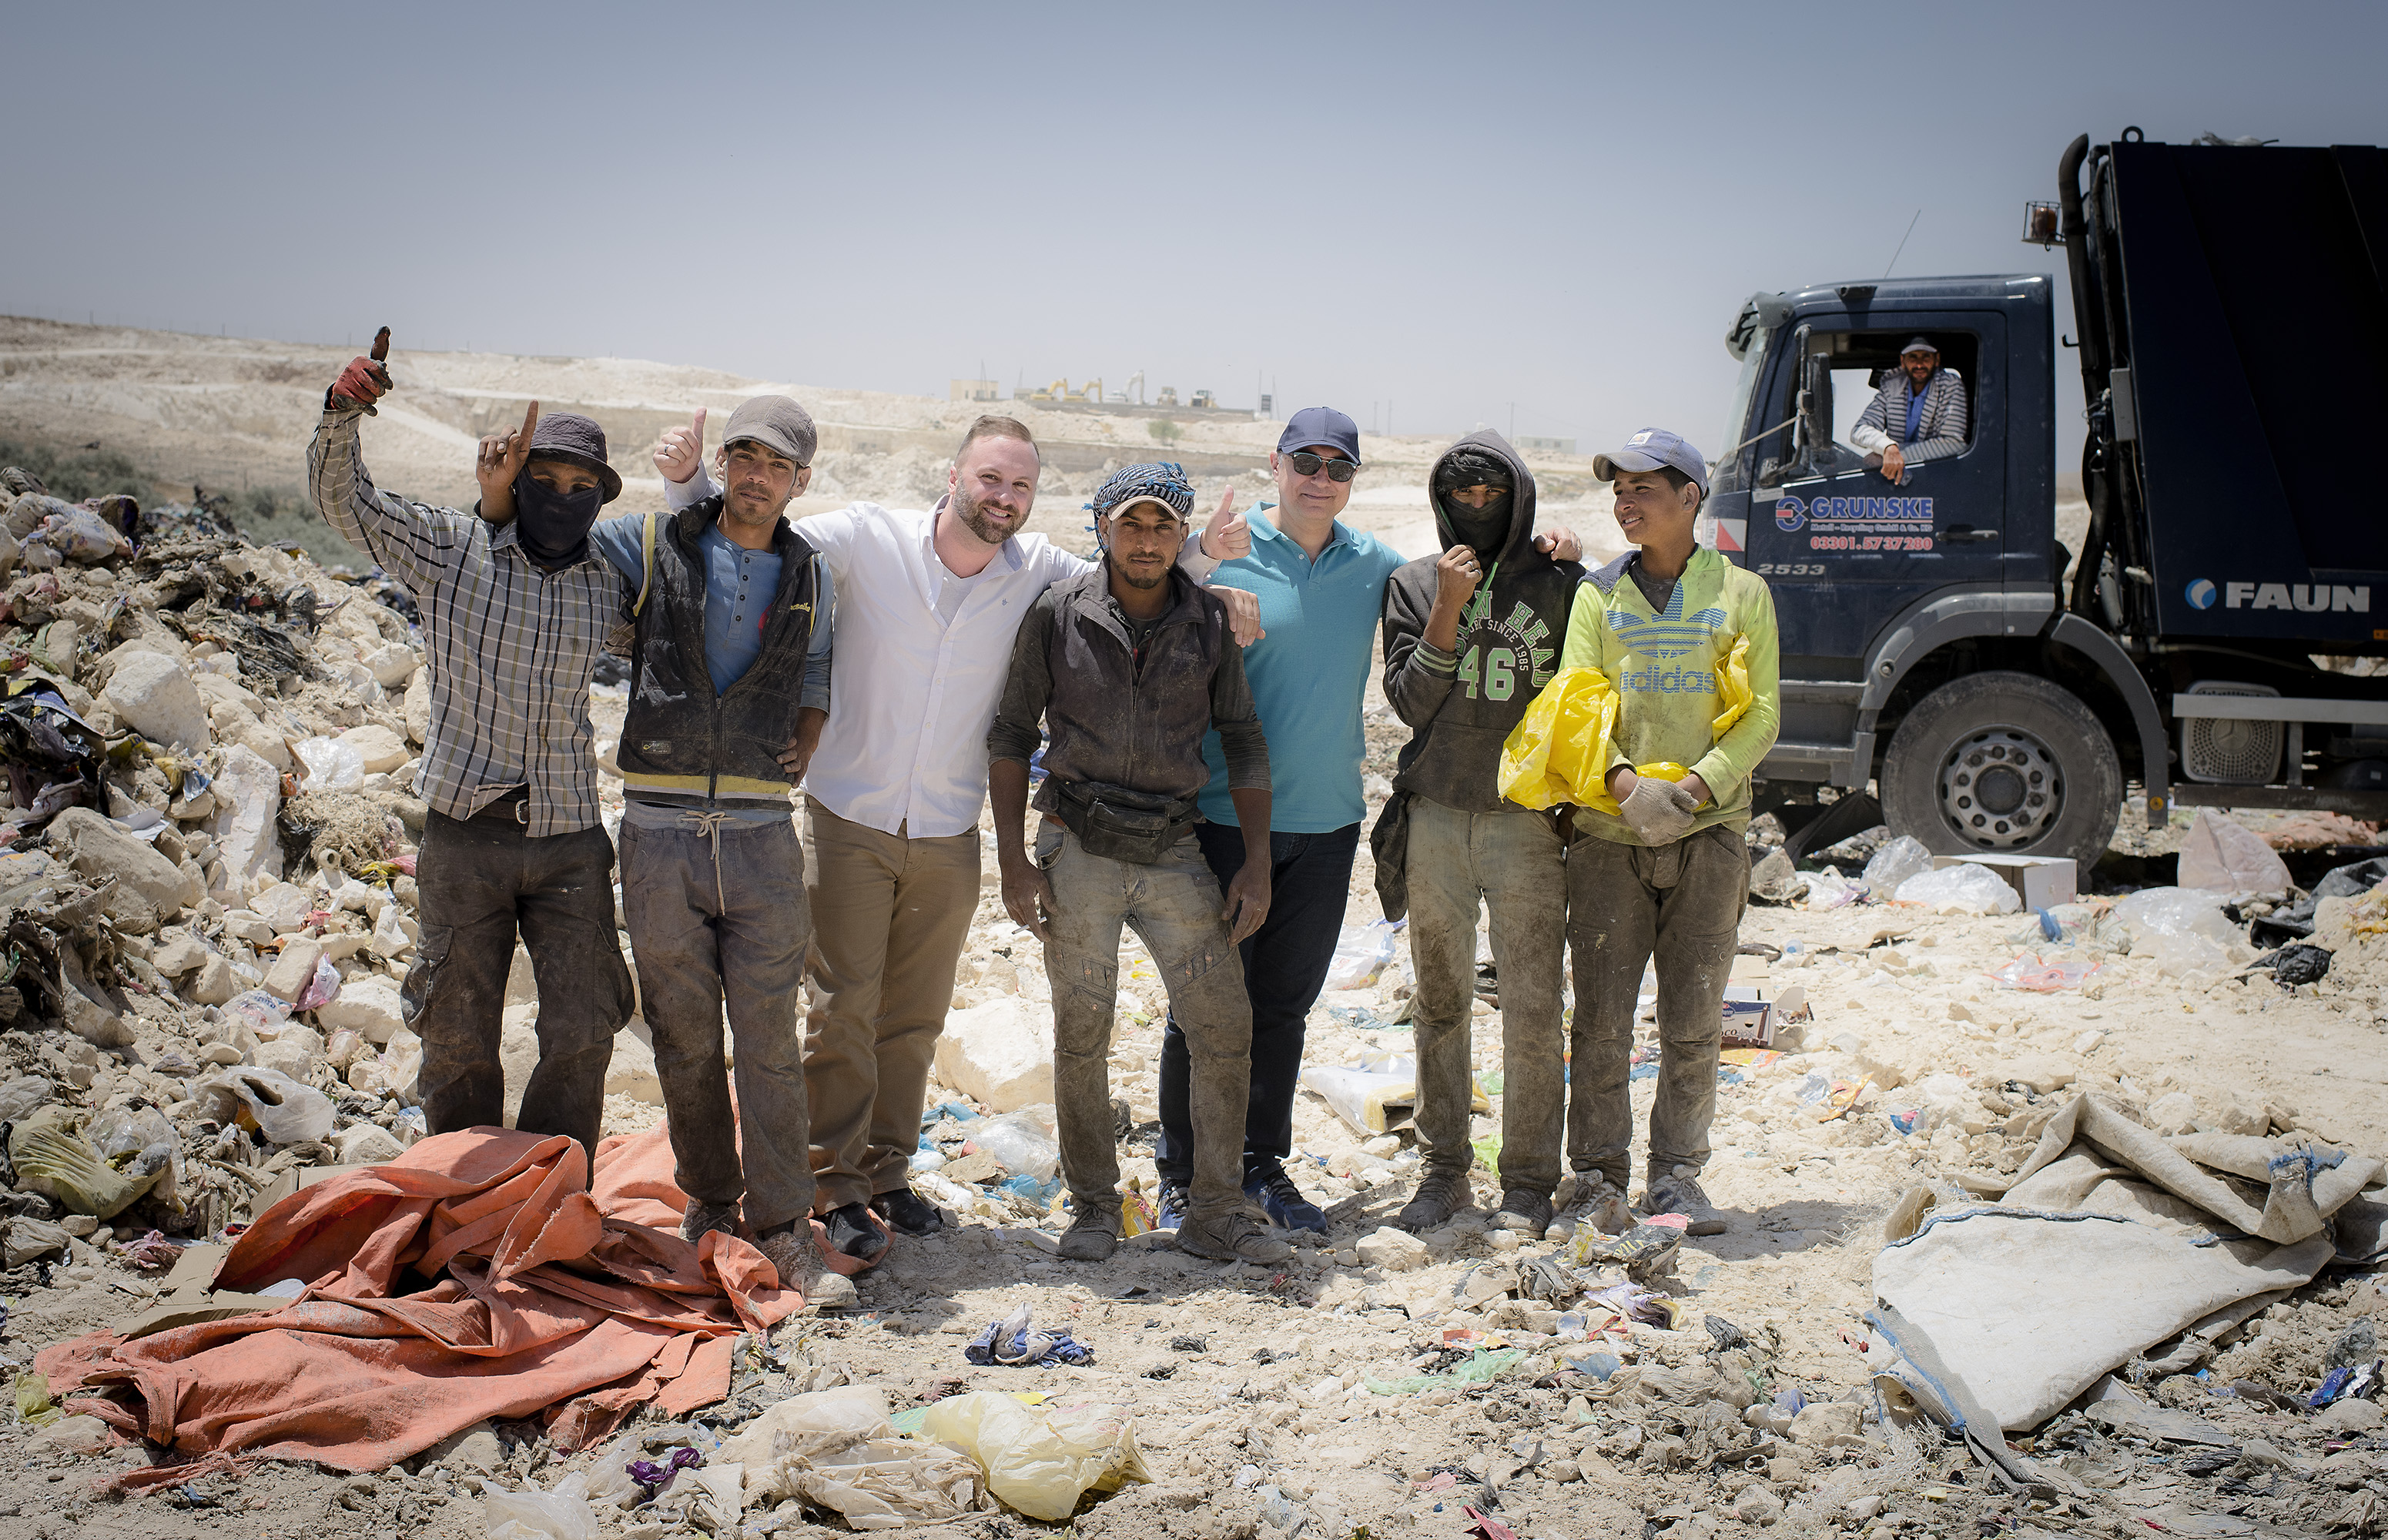 ISWA, dumpsites, informal recyclers, workers, waste management, waste, resources, waste pickers, human rights, people and waste, Jordan, Middle East